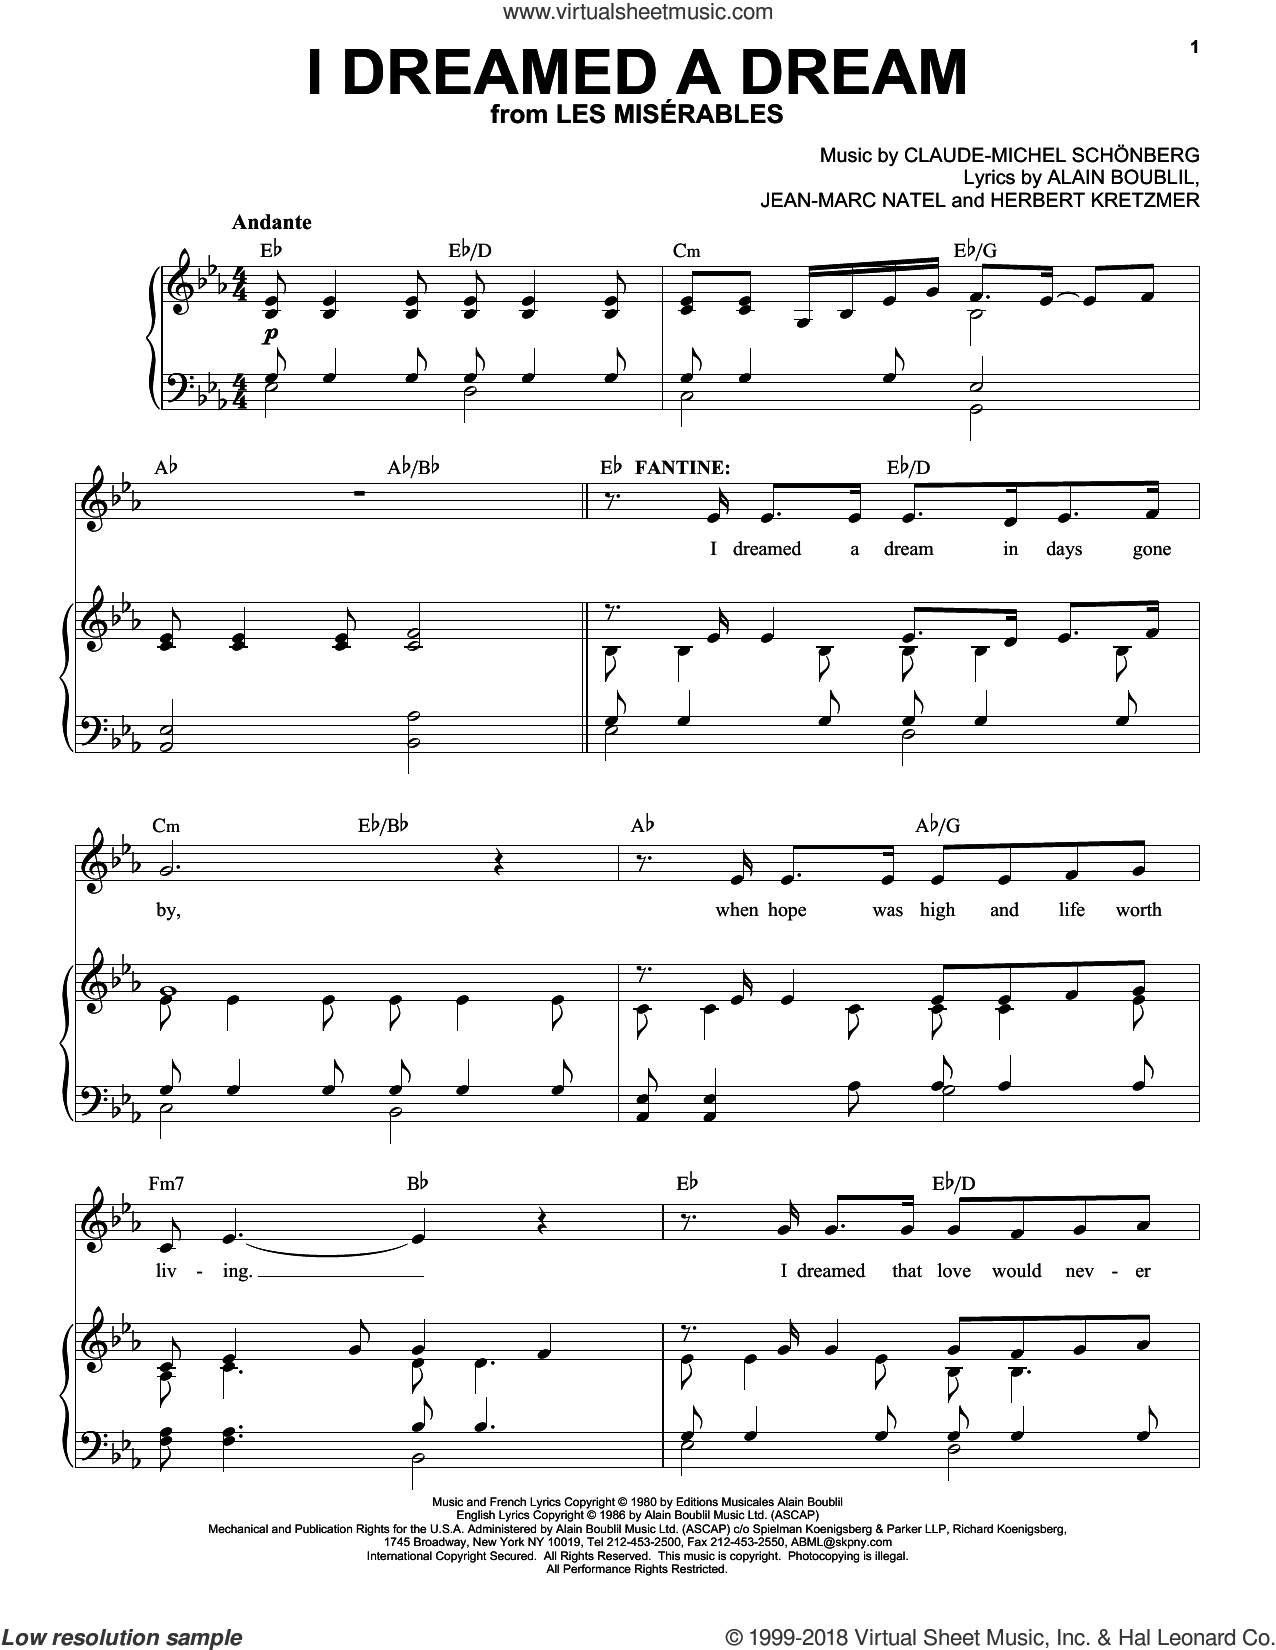 I Dreamed A Dream sheet music for voice and piano (High ) by Alain Boublil, Susan Boyle, Claude-Michel Schonberg, Herbert Kretzmer and Jean-Marc Natel, intermediate. Score Image Preview.